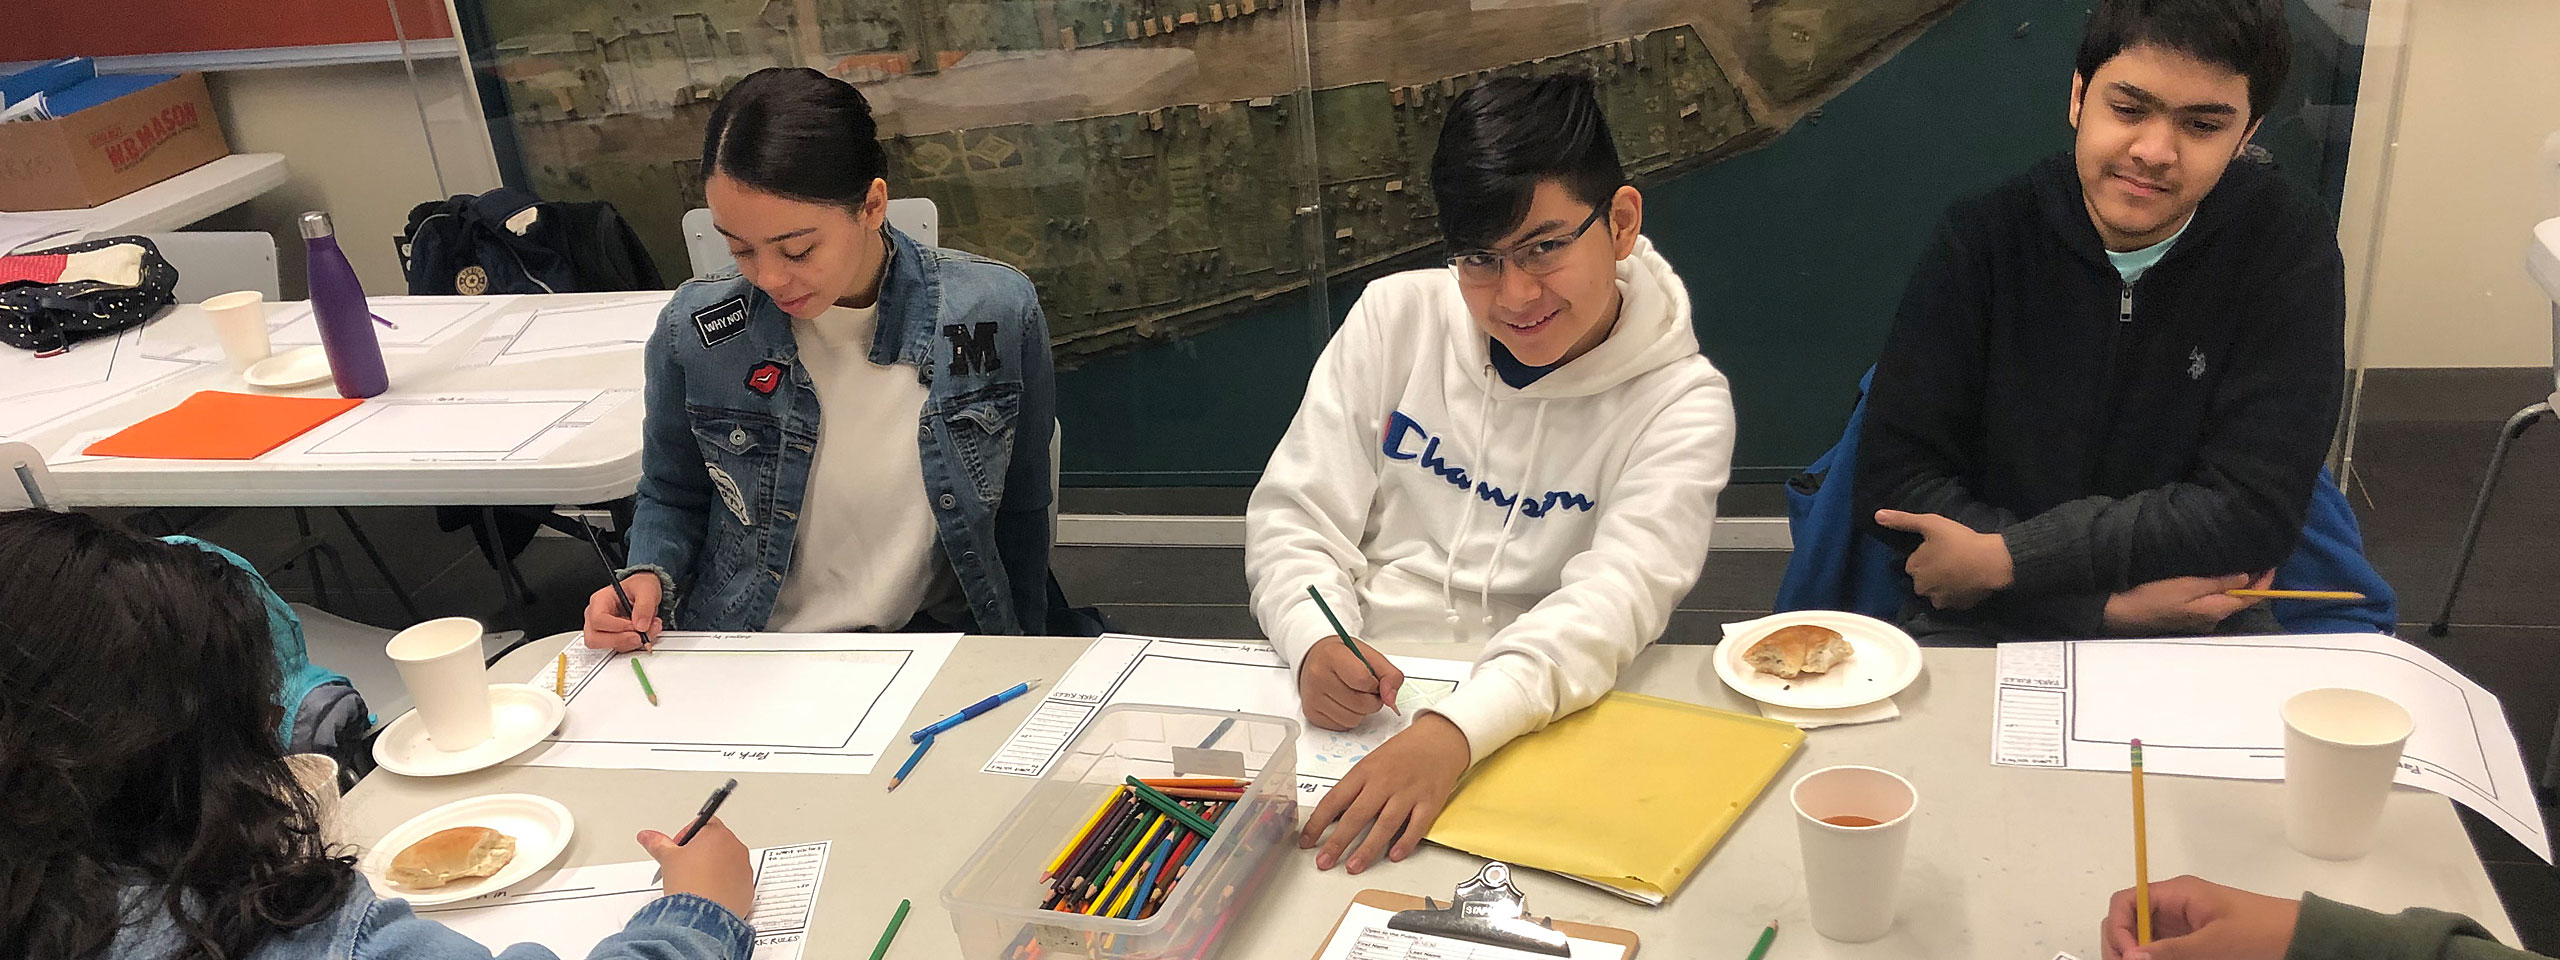 Photograph of Saturday Academy students designing parks in Museum classroom.